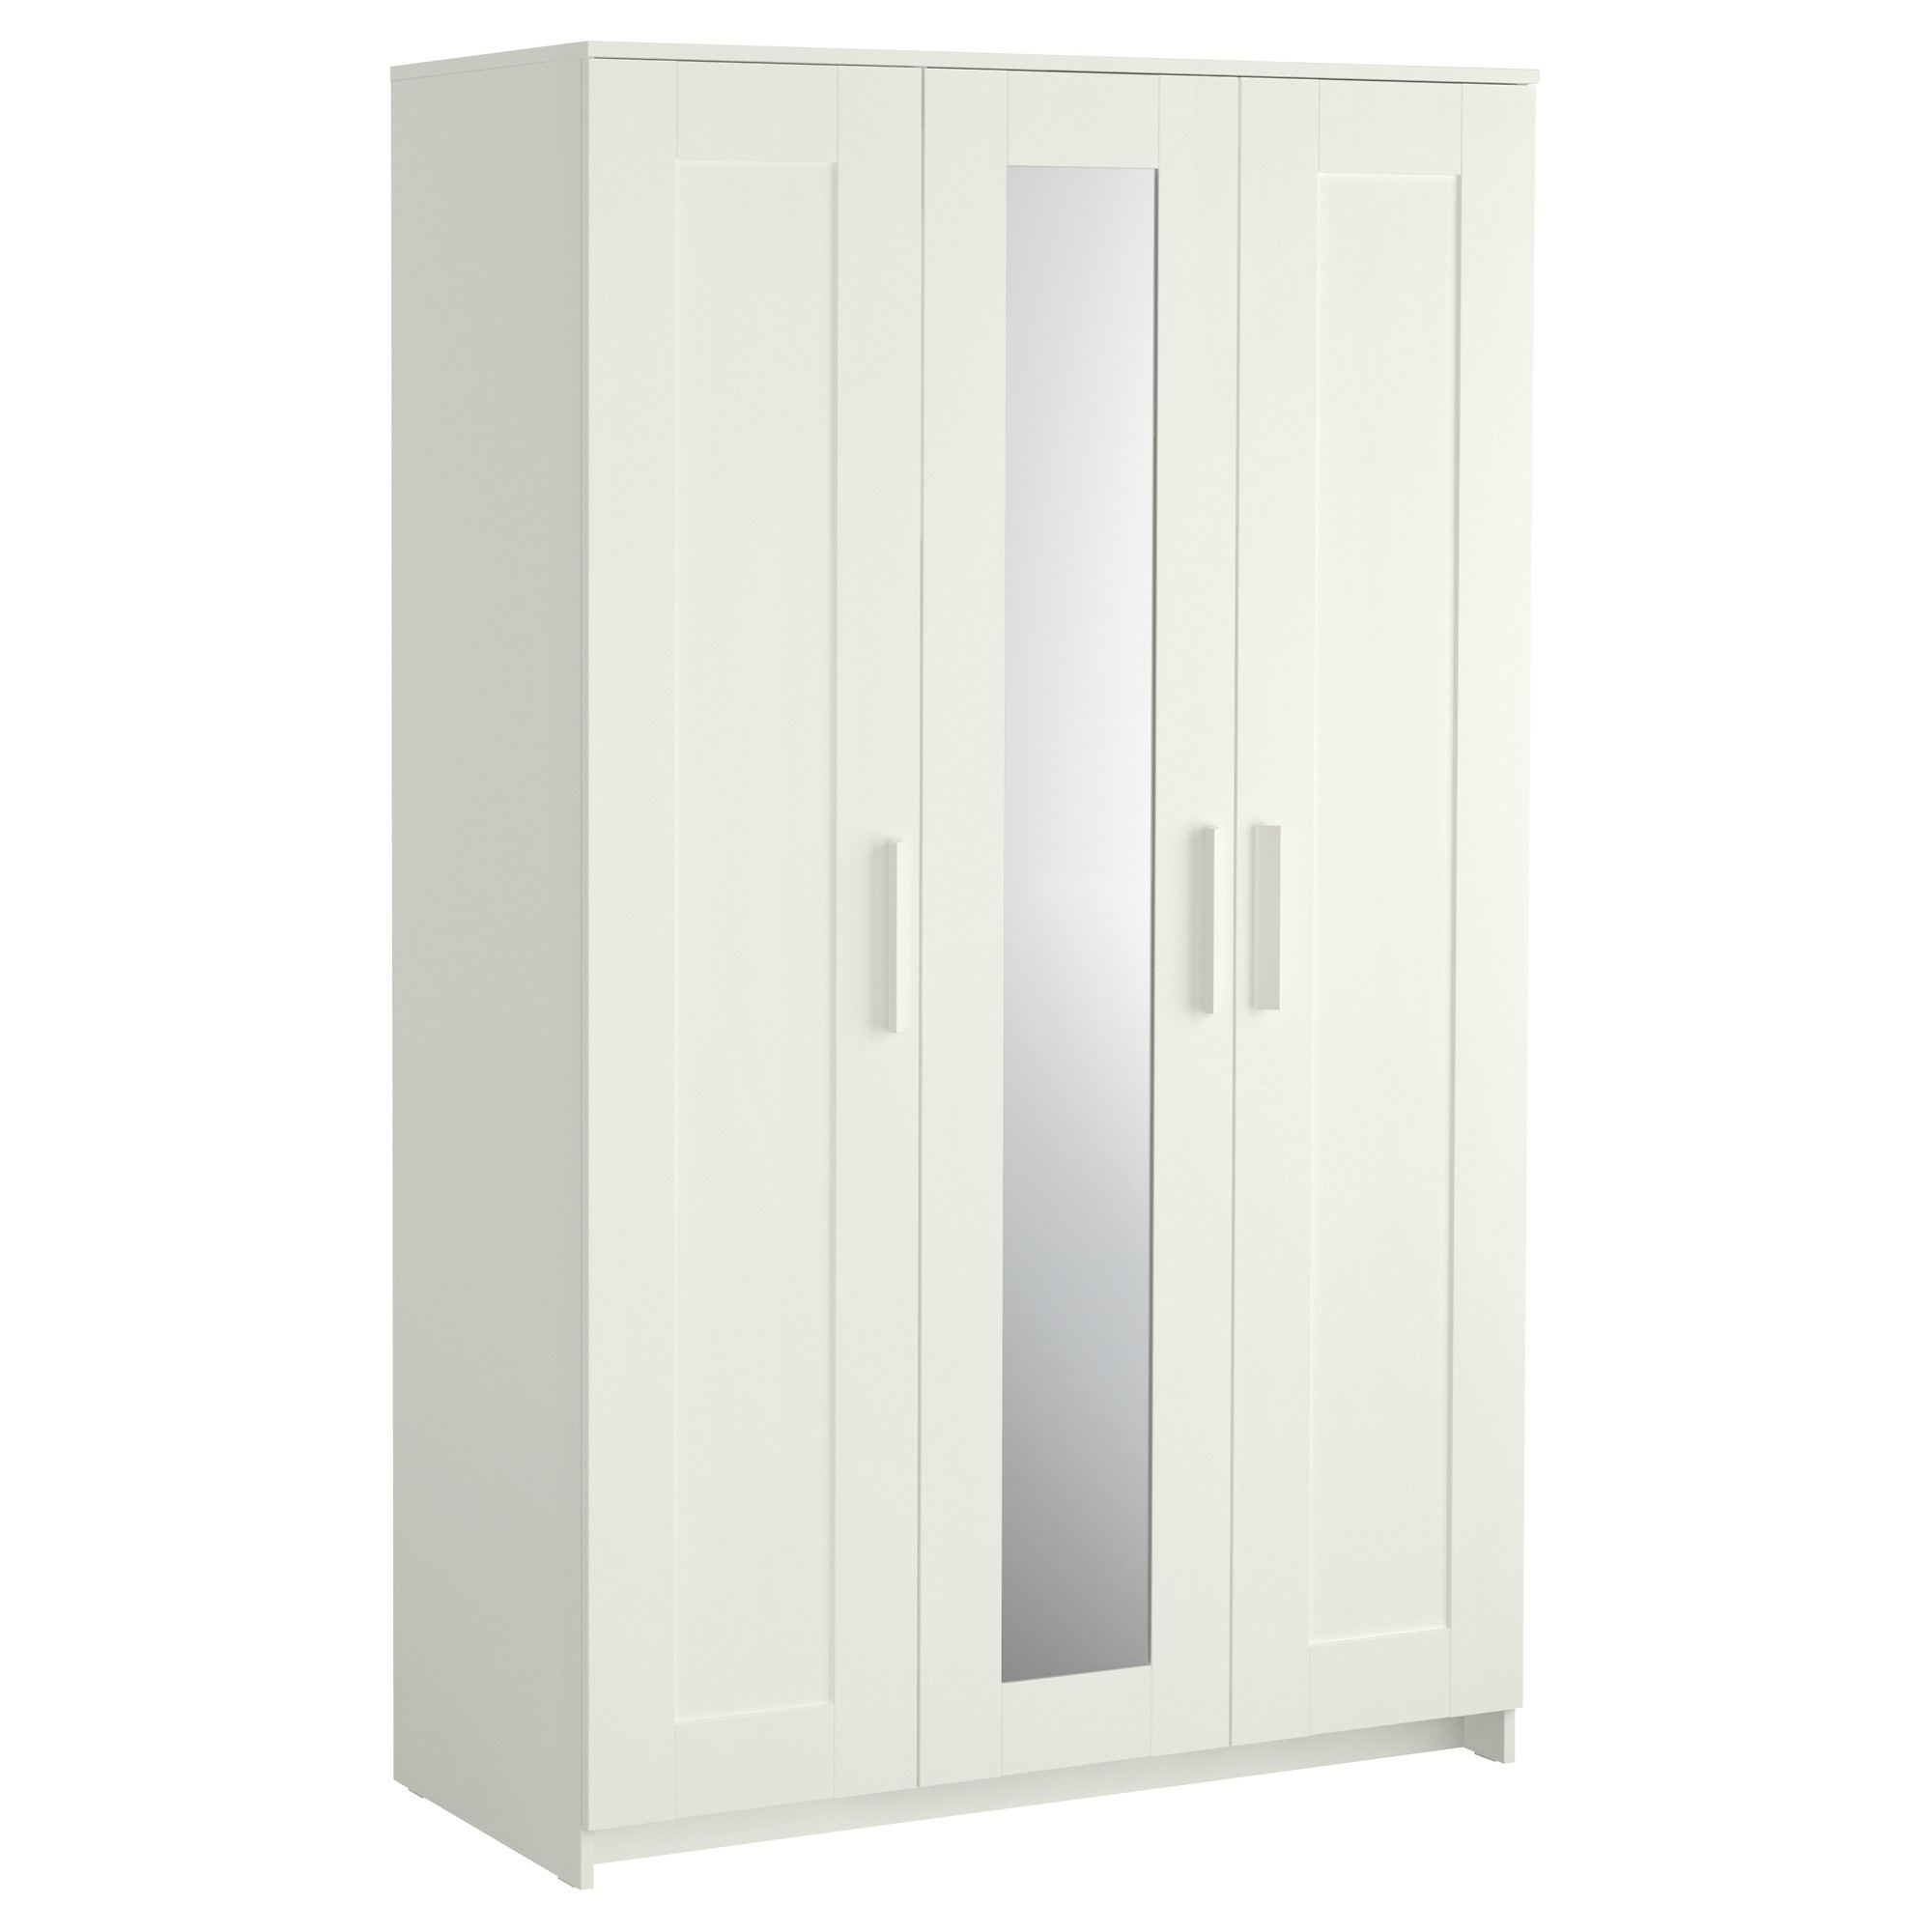 Current Brimnes Wardrobe With 3 Doors – White – Ikea Inside White 3 Door Wardrobes (View 5 of 15)